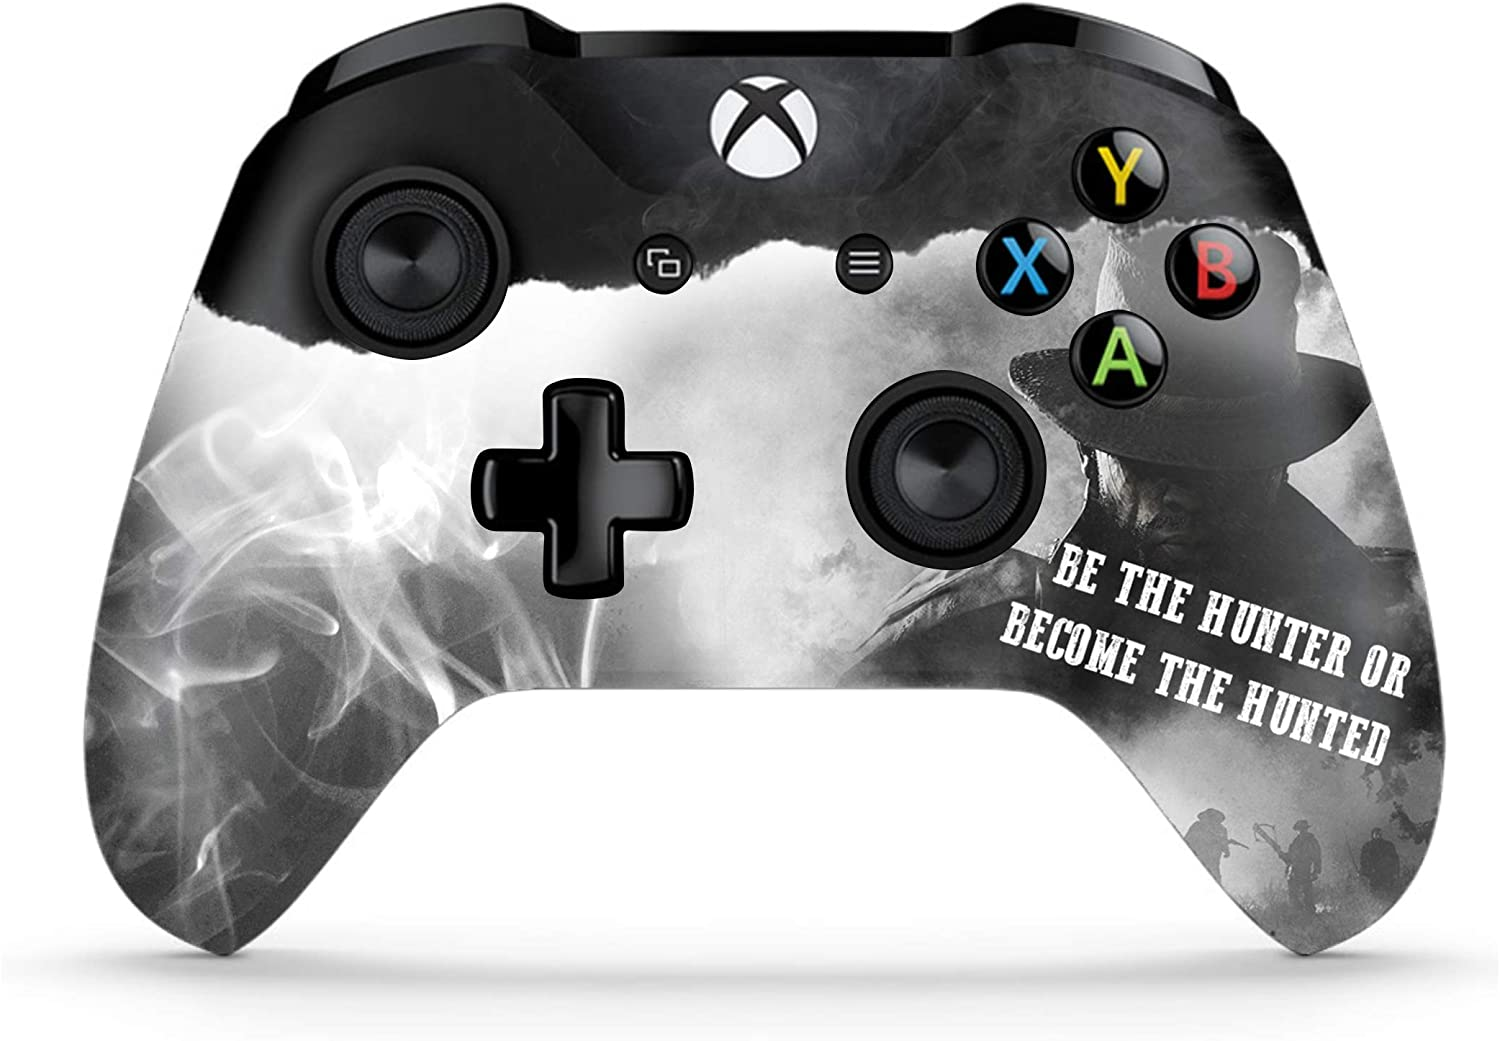 DreamController Modded Xbox One Controller - Xbox One Modded Controller Works with Xbox One S/Xbox One X/and Windows 10 PC - Rapid Fire and Aimbot Xbox One Controller with Included Mods Manual